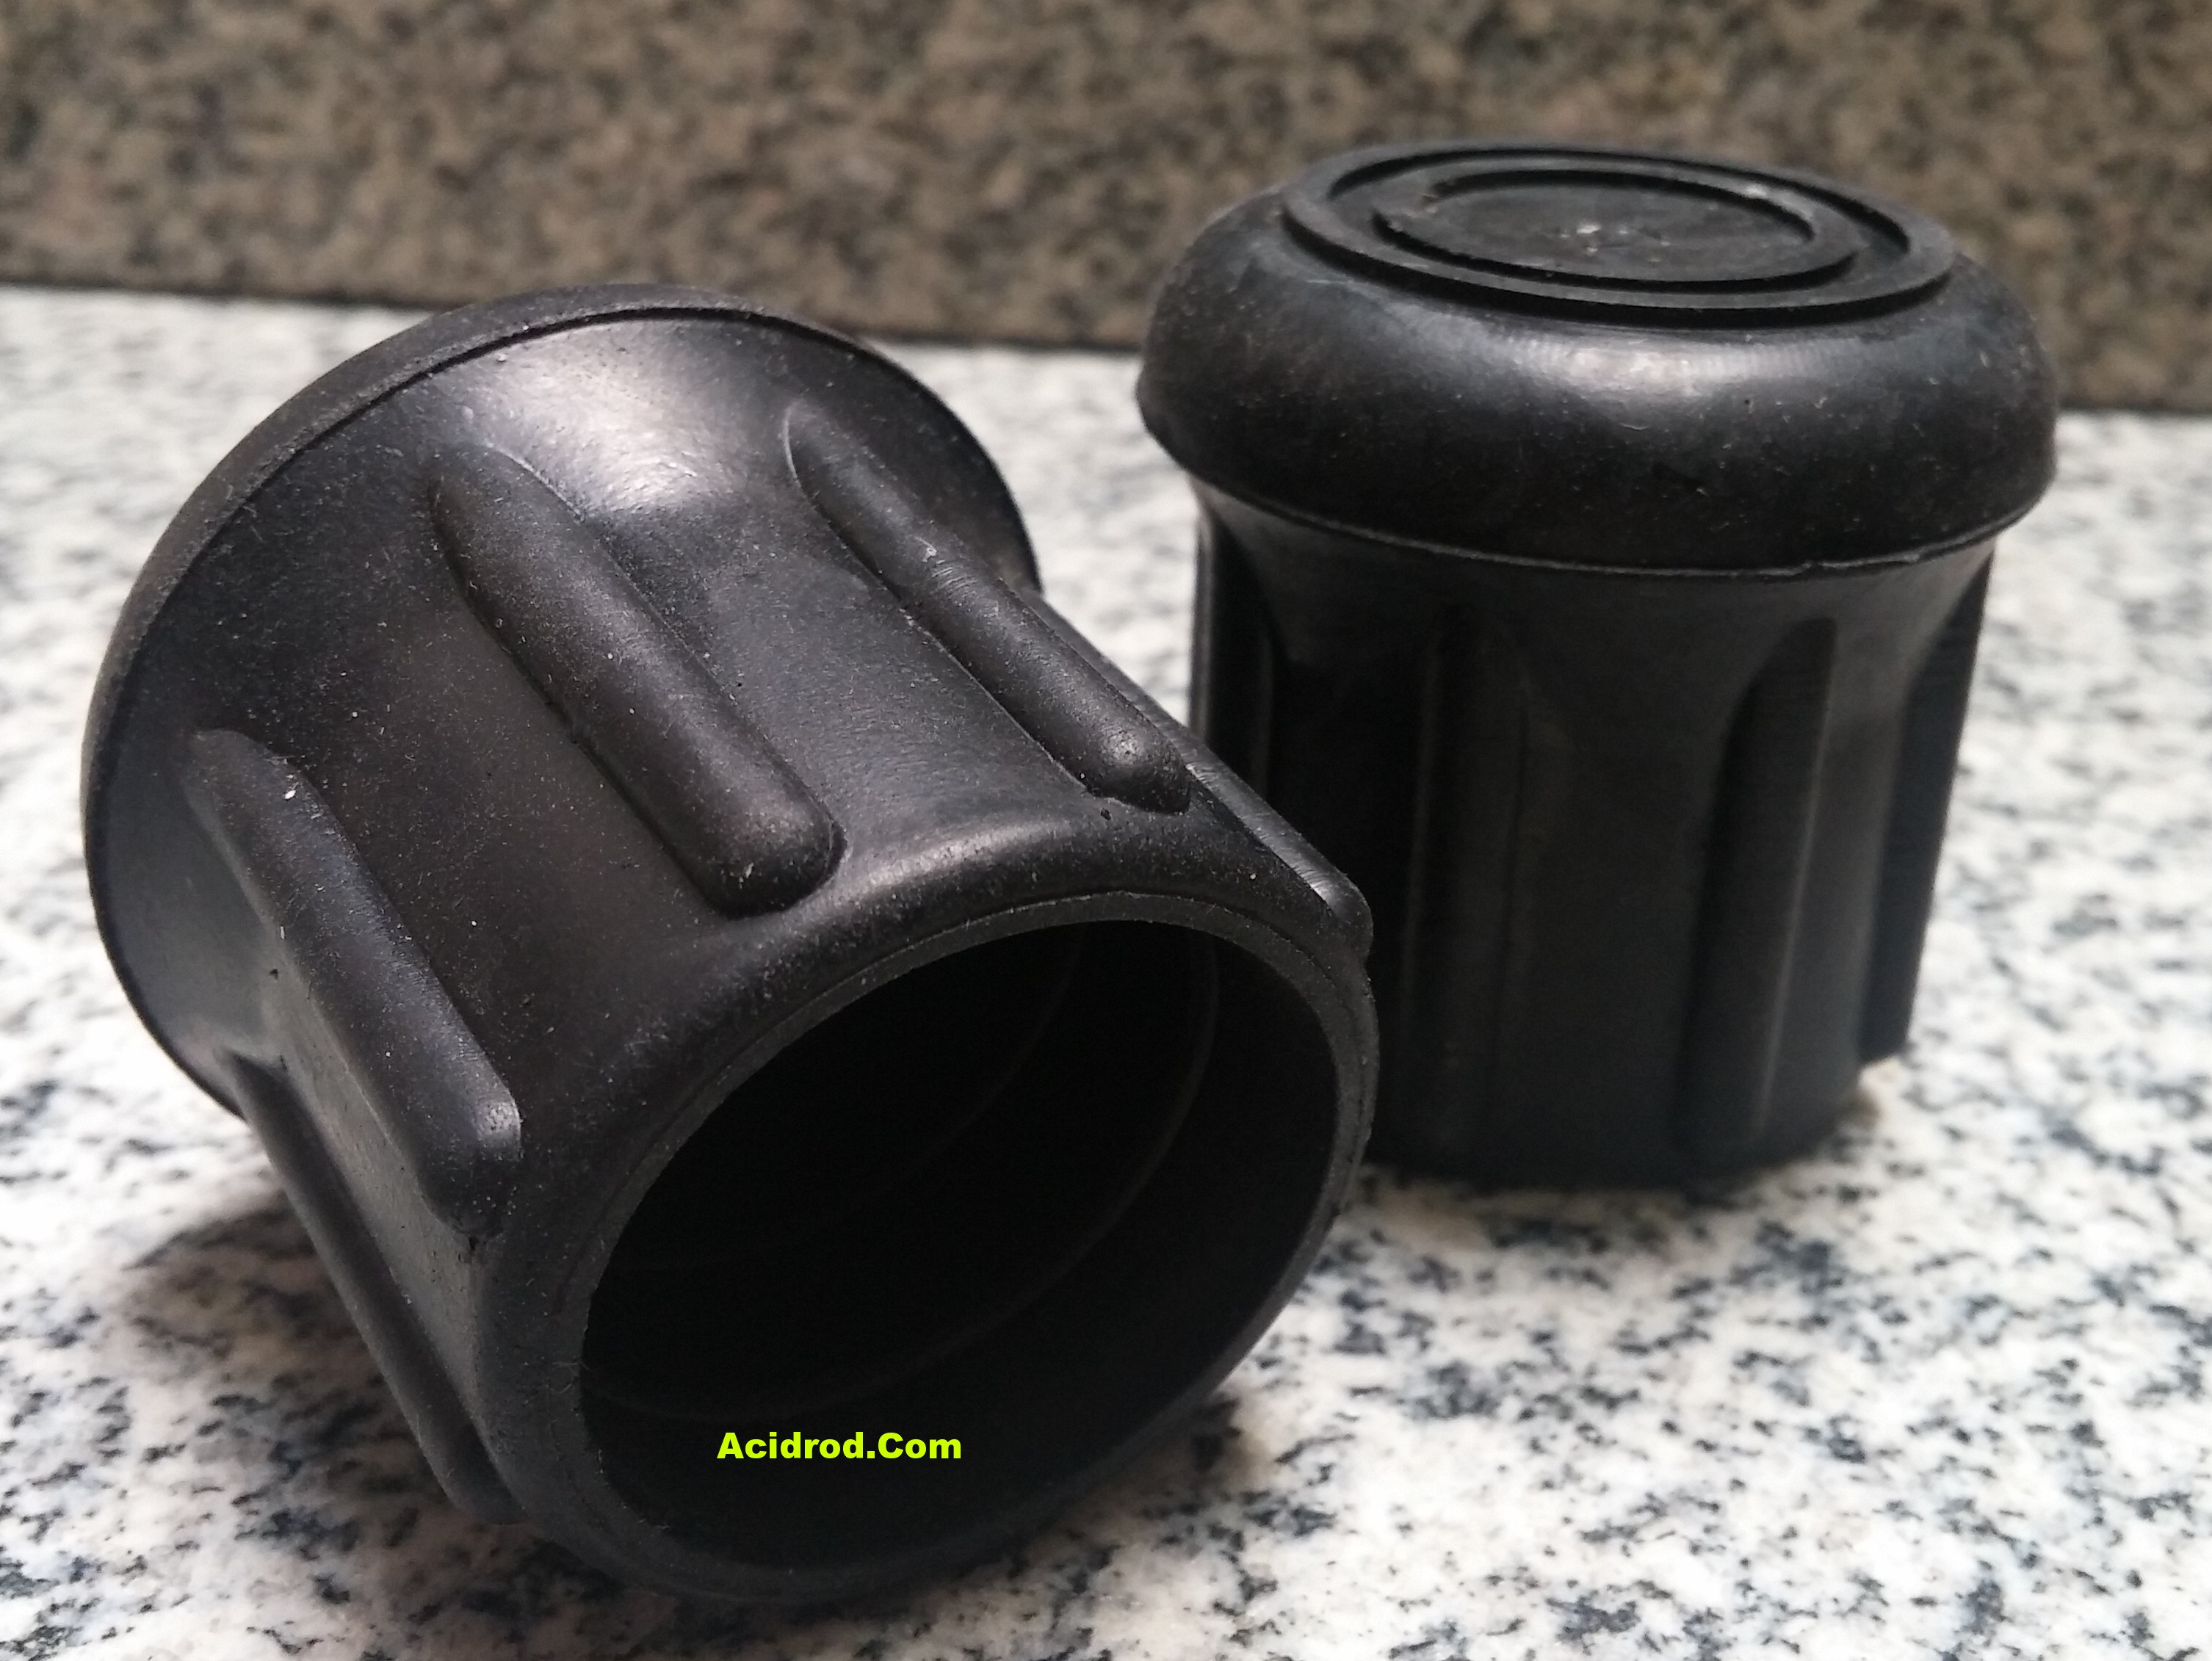 Butt Caps Amp Gimbal Covers For Fishing Rods